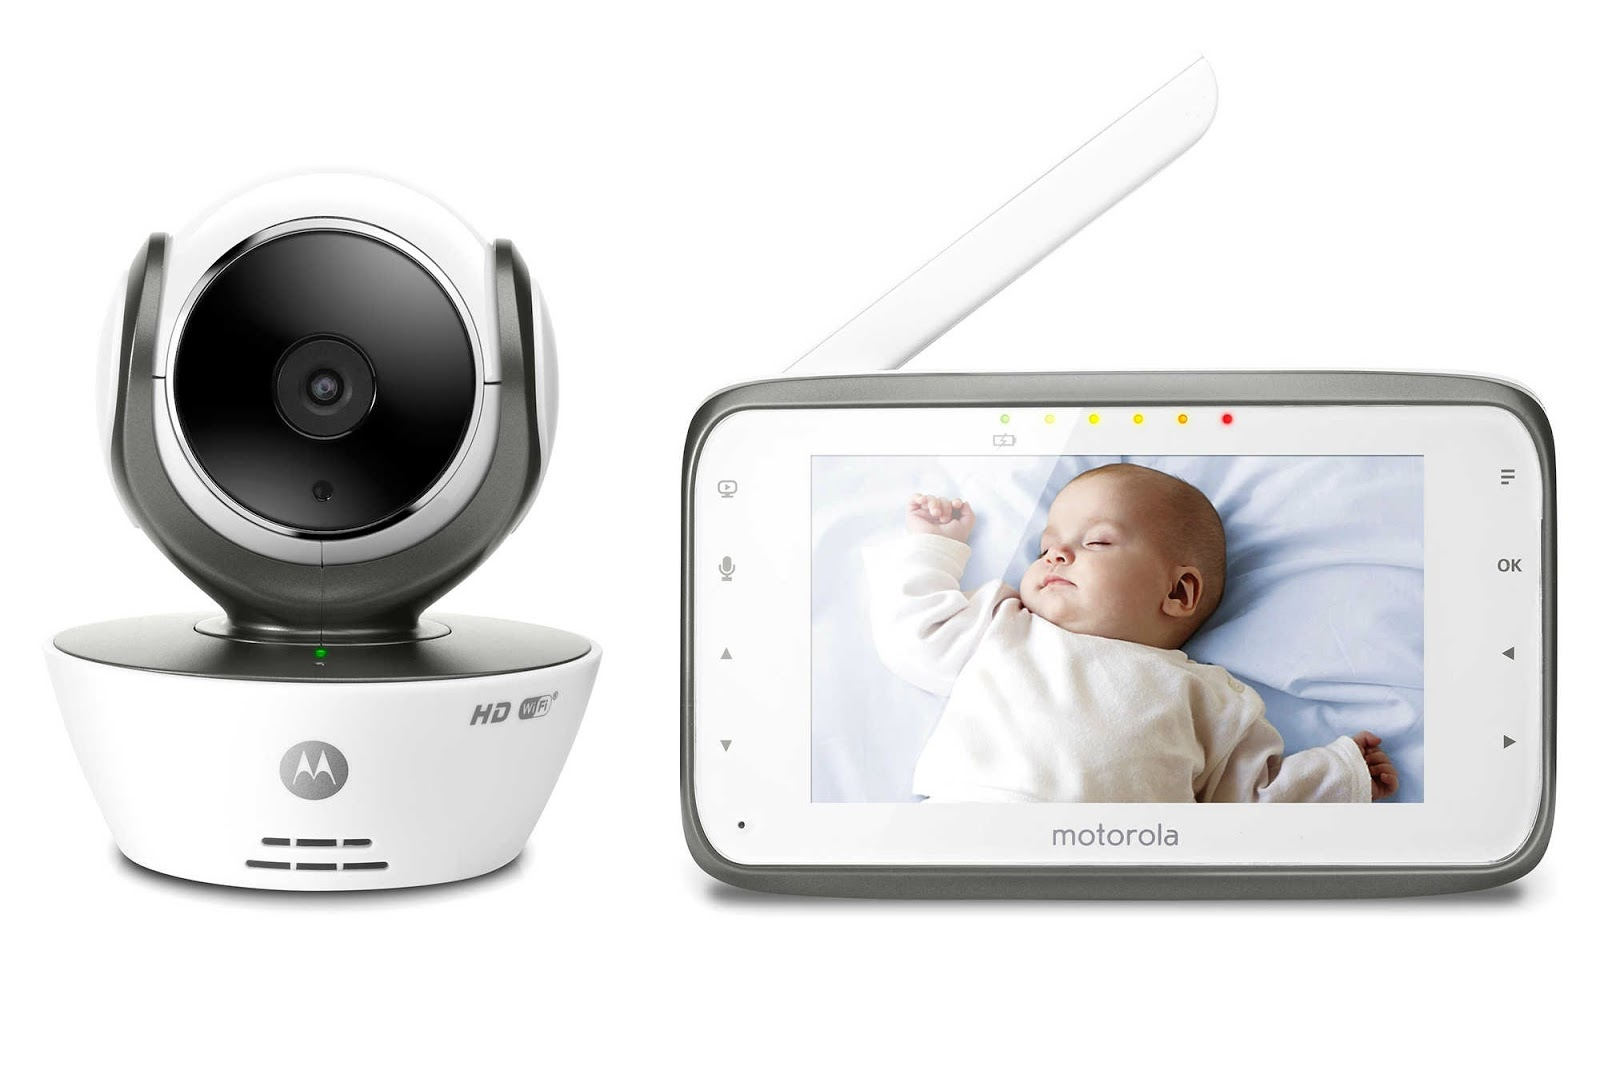 lunchbox dad does this motorola baby monitor help you spy on your kids better. Black Bedroom Furniture Sets. Home Design Ideas